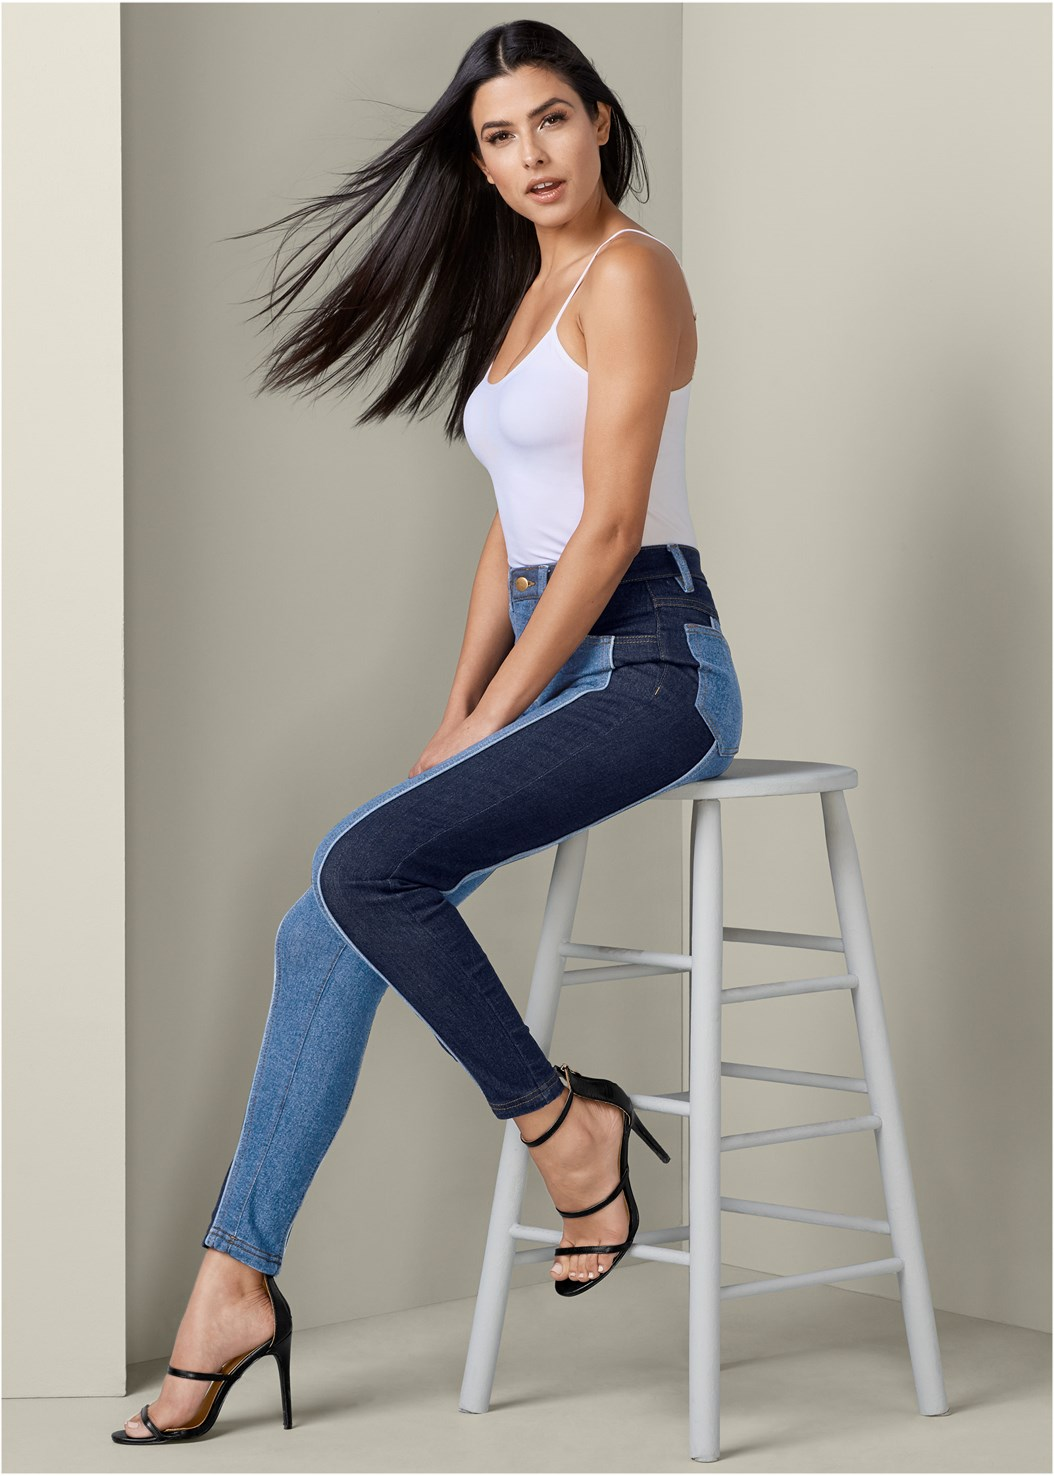 Two Tone Jeans,Basic Cami Two Pack,High Heel Strappy Sandals